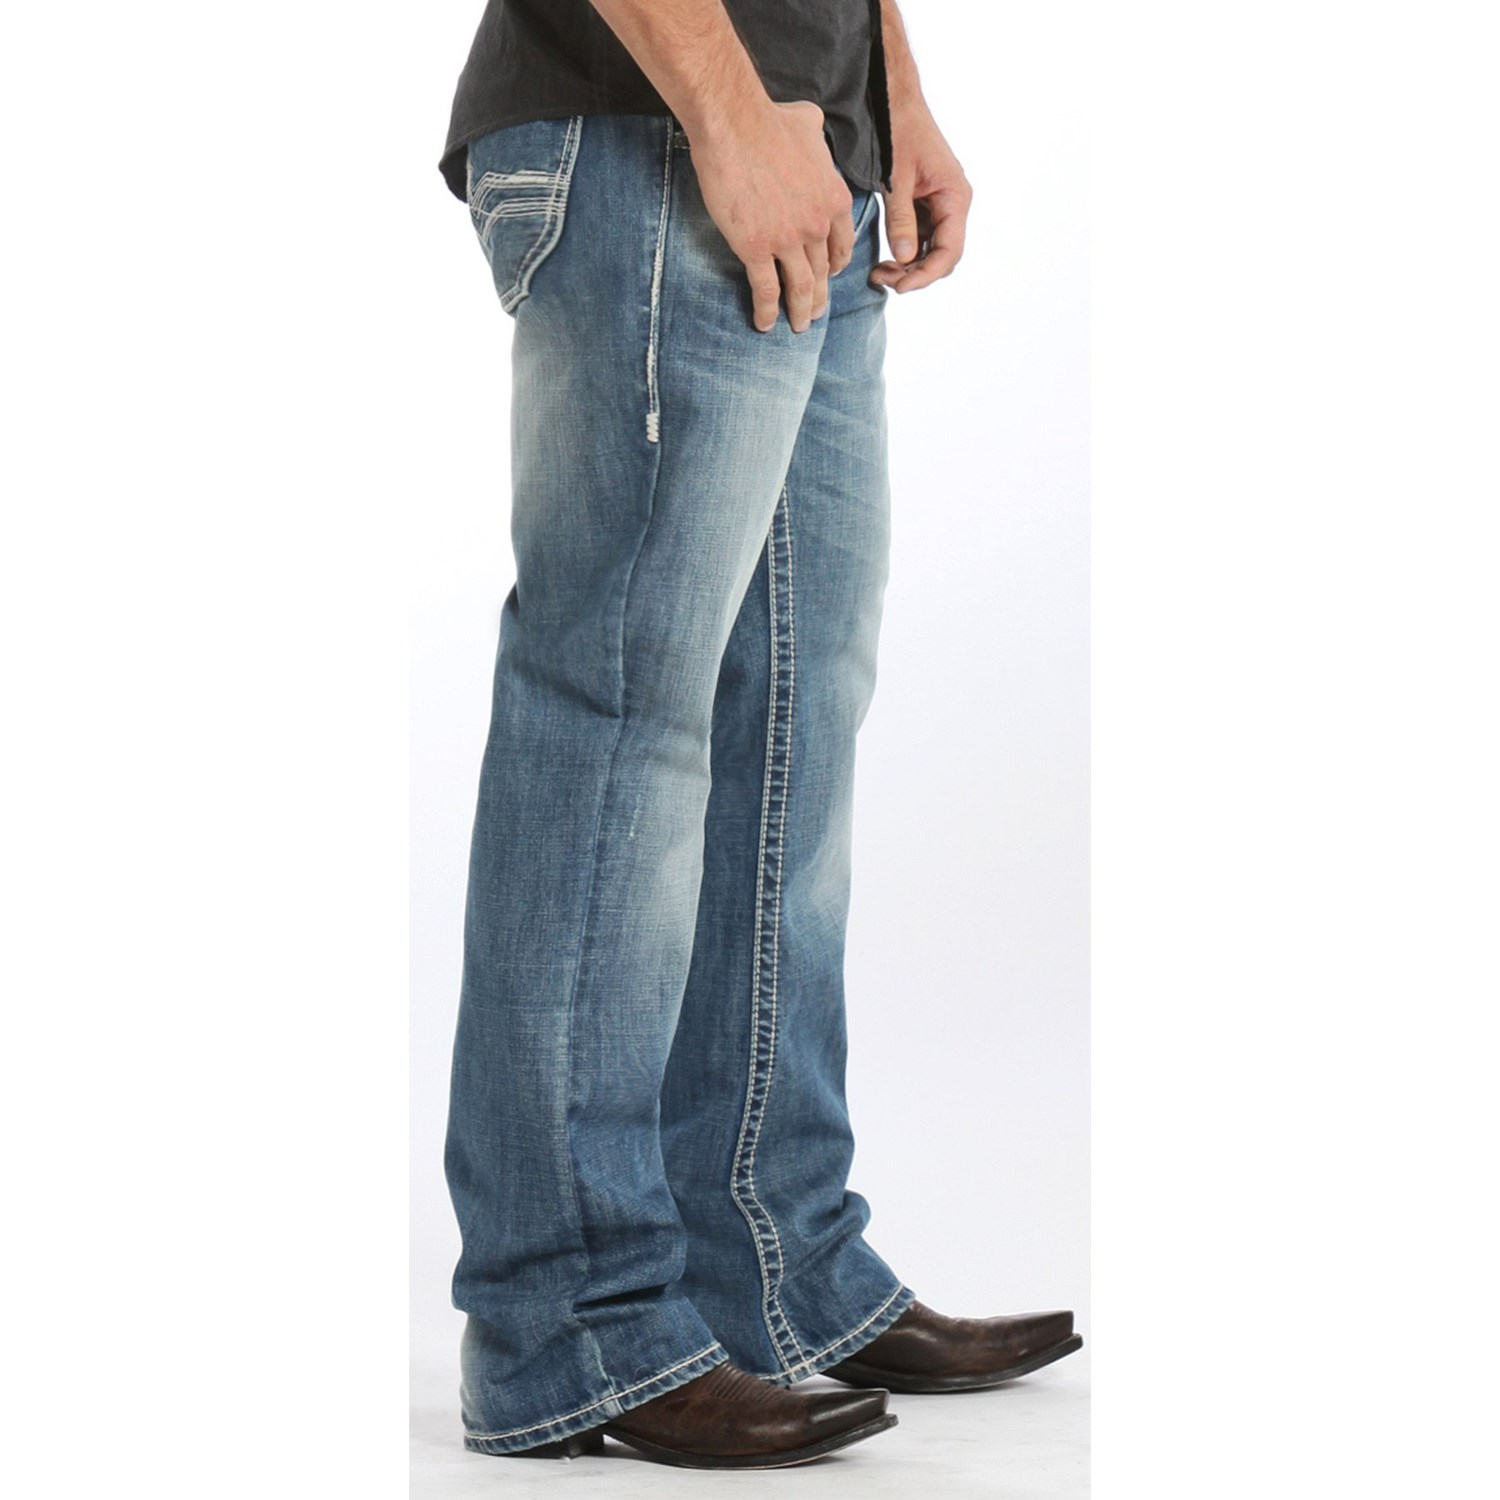 Relaxed Fit Bootcut Jeans For Men - Jeans Am